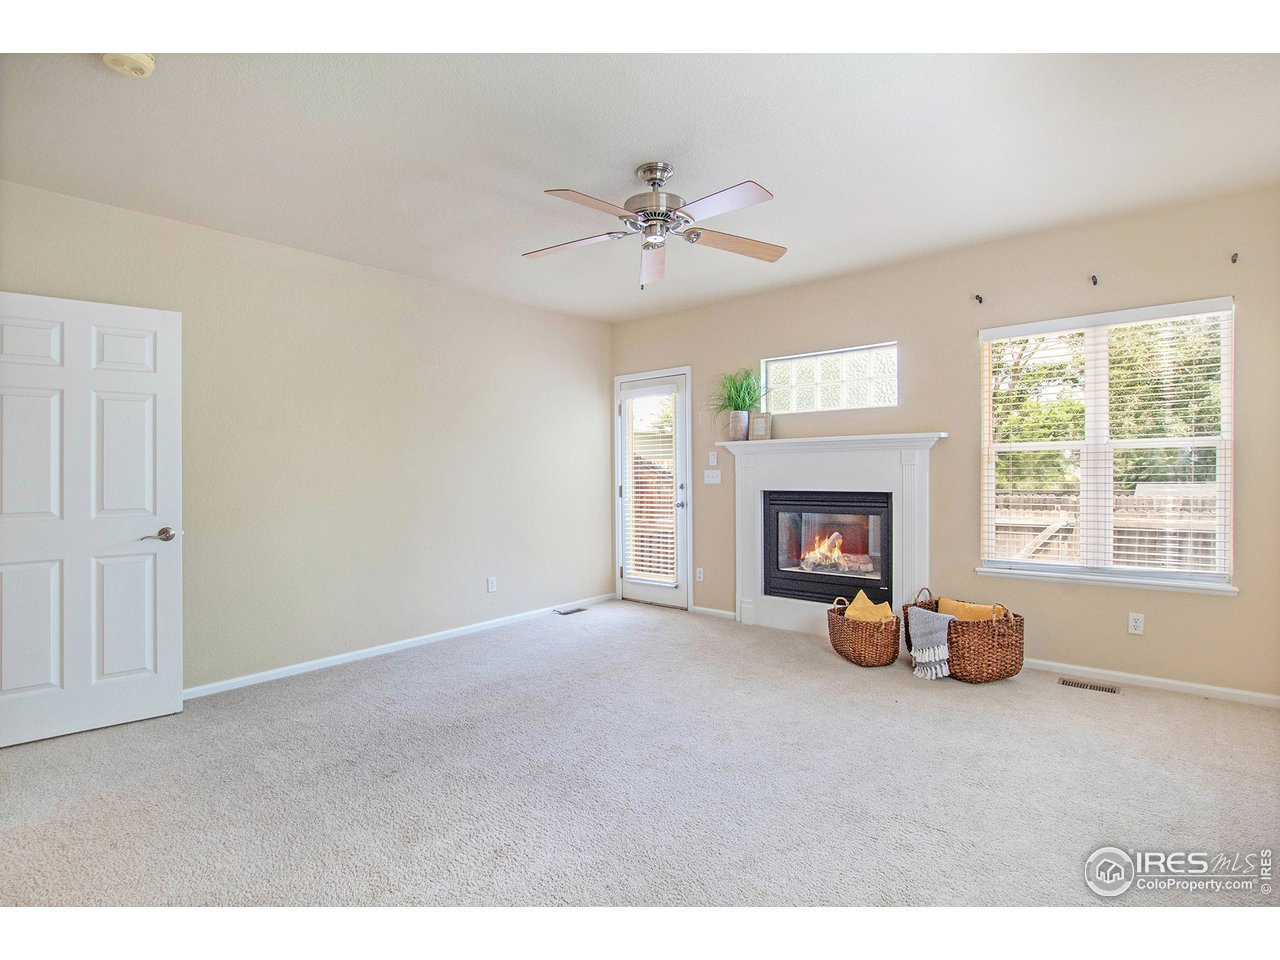 Spacious living room with fireplace